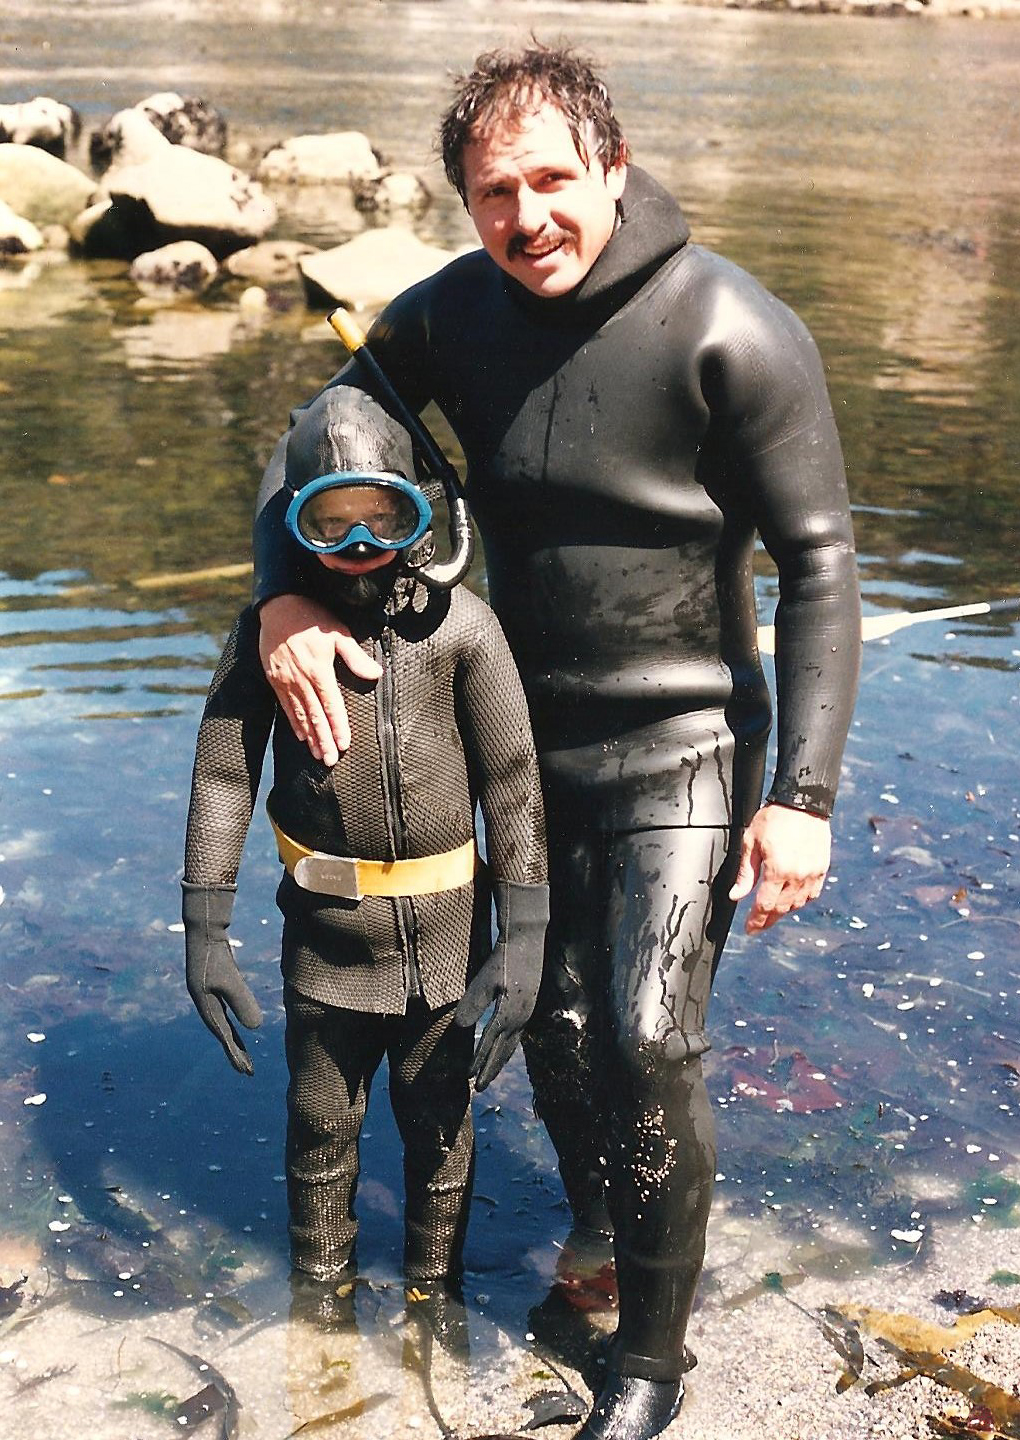 Al built his own wetsuits for his kids since youth sizes were not existent in the early days of diving.